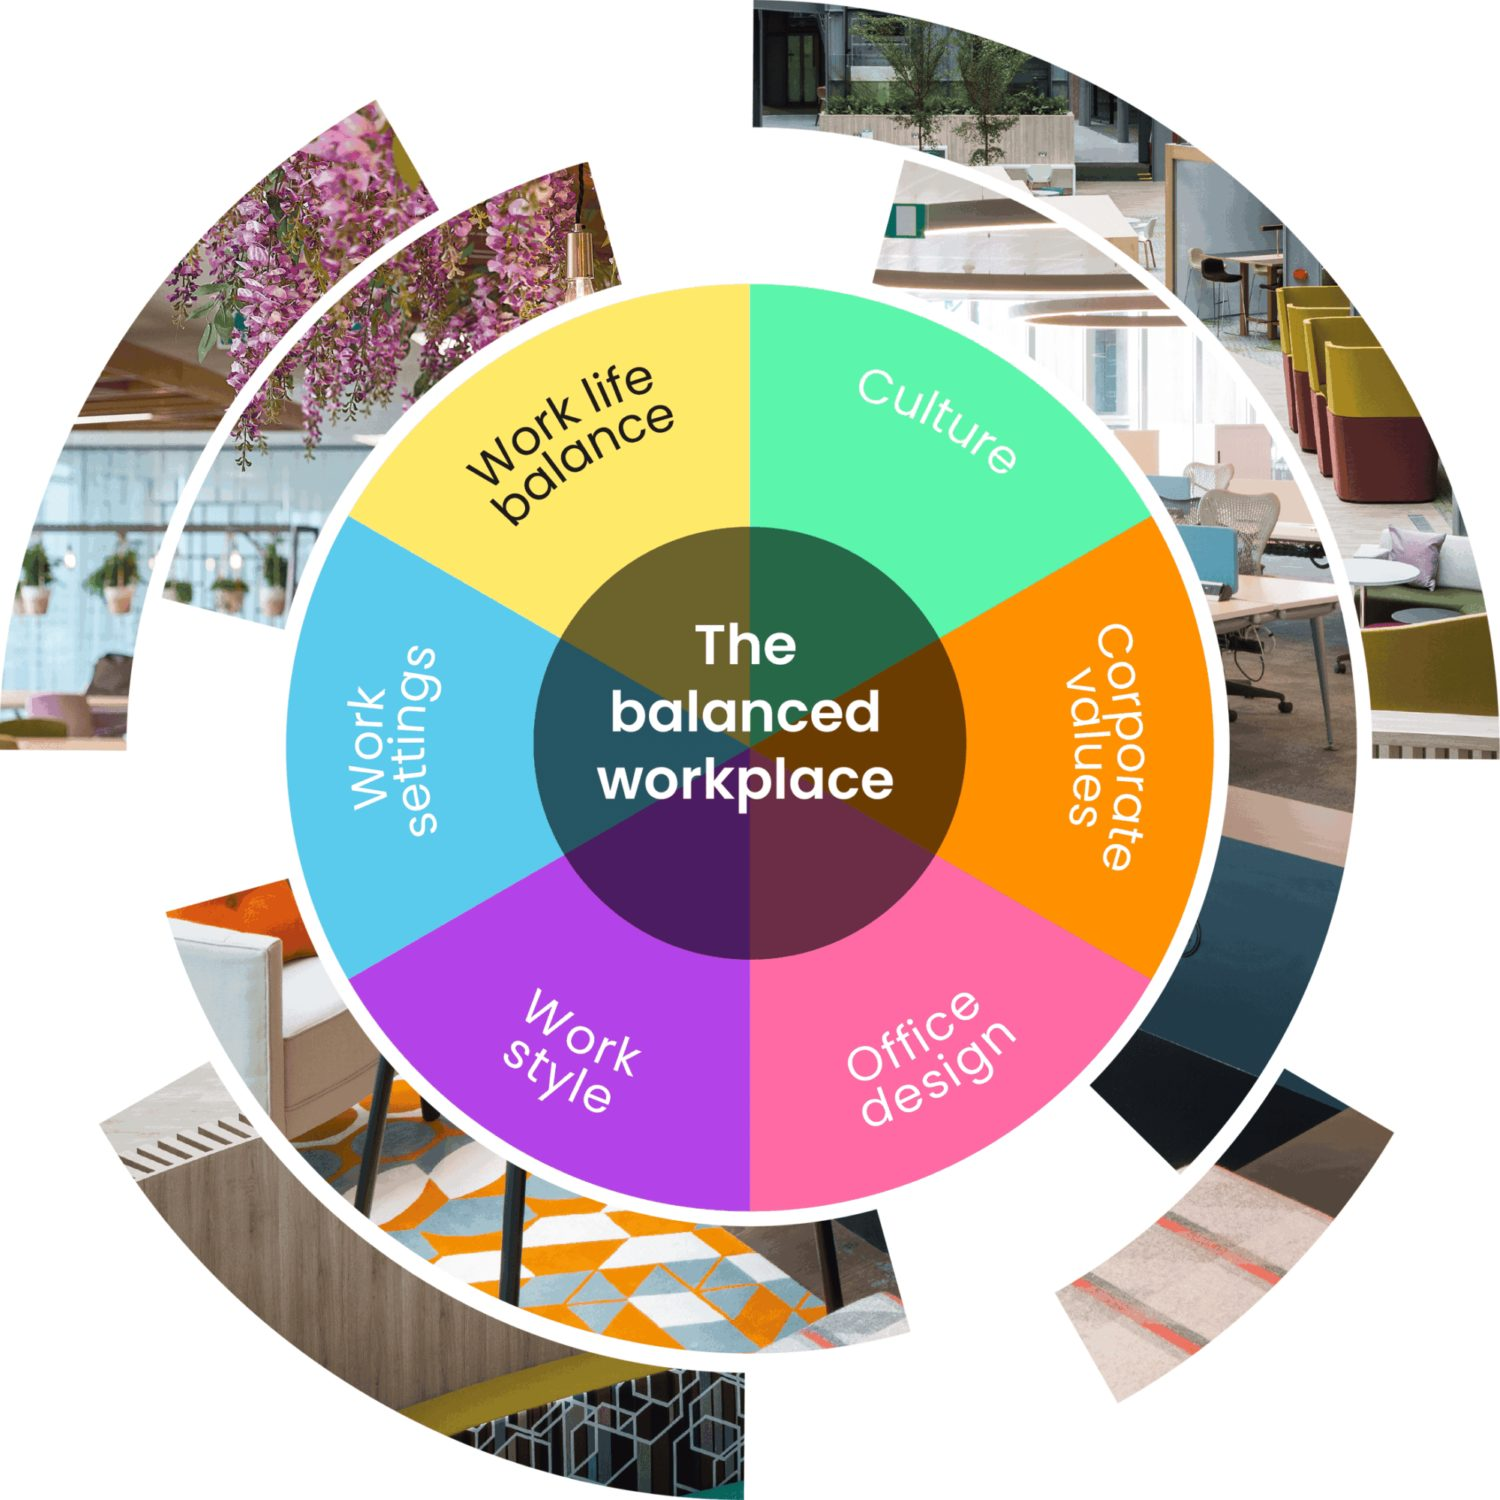 work life balance in office design chart